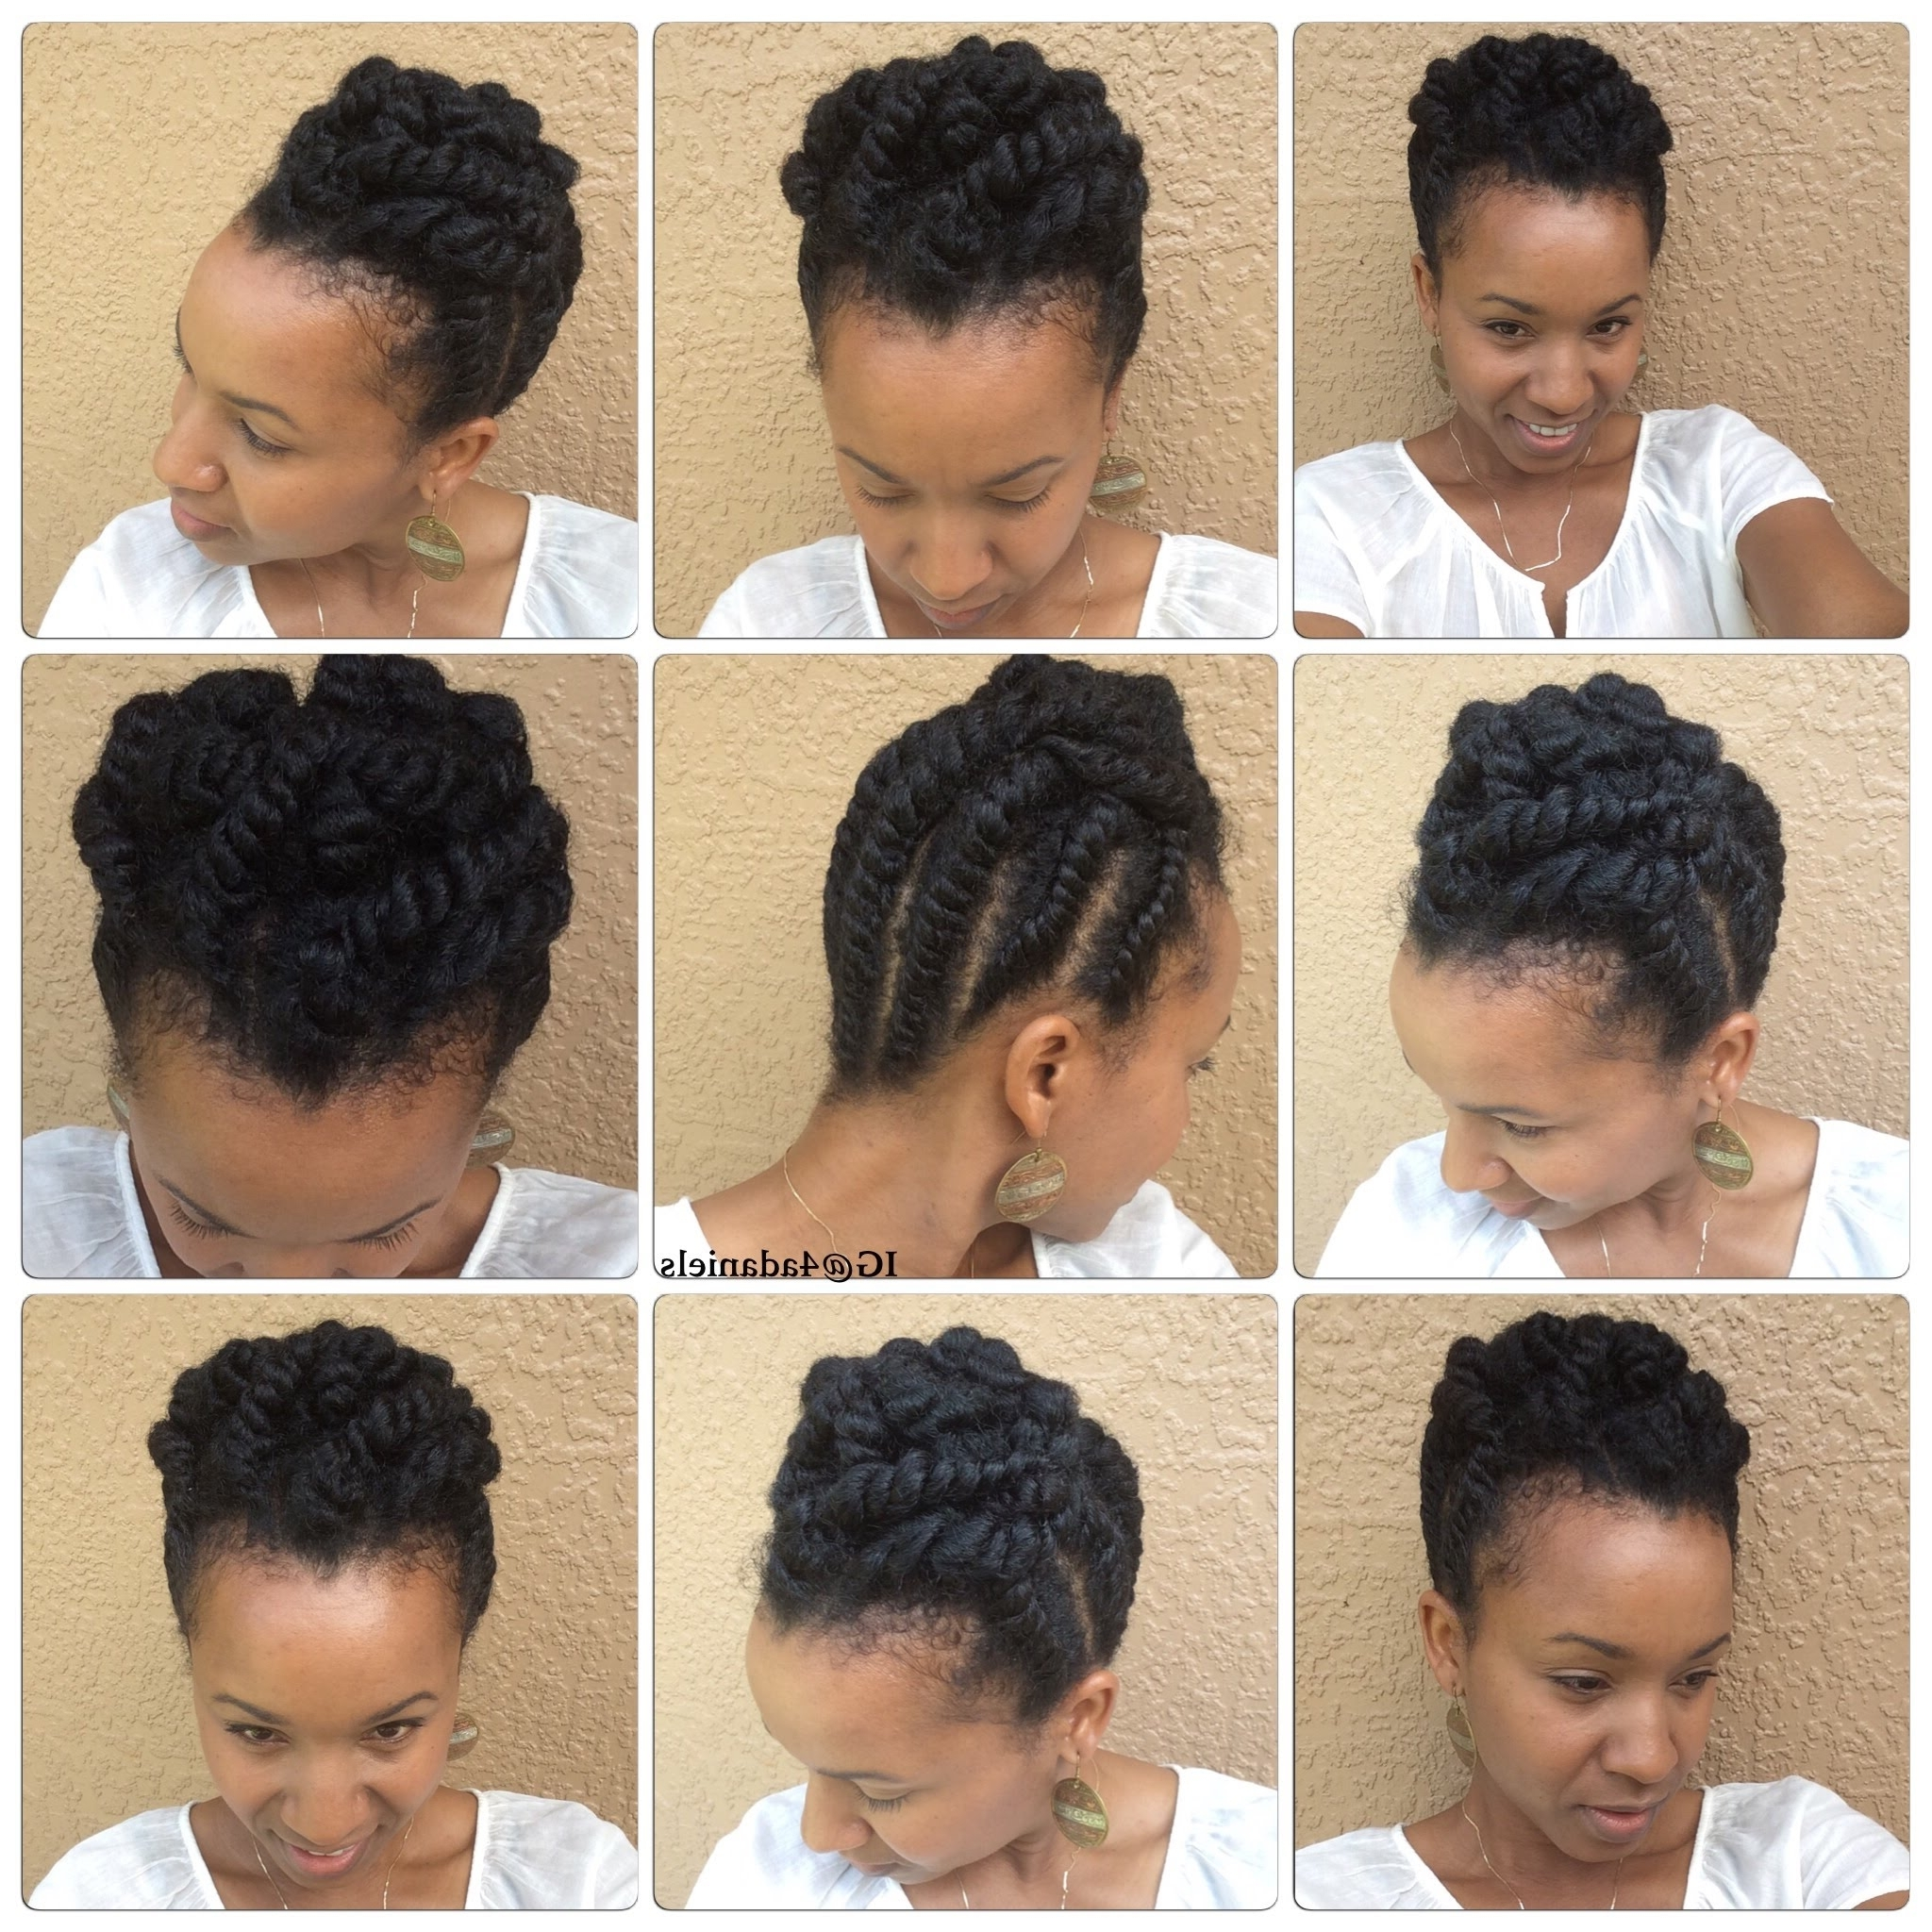 Natural Hair| Chunky Flat Twist Protectivestyle Updo Short/medium Intended For 2 Strand Twist Updo Hairstyles (View 7 of 15)